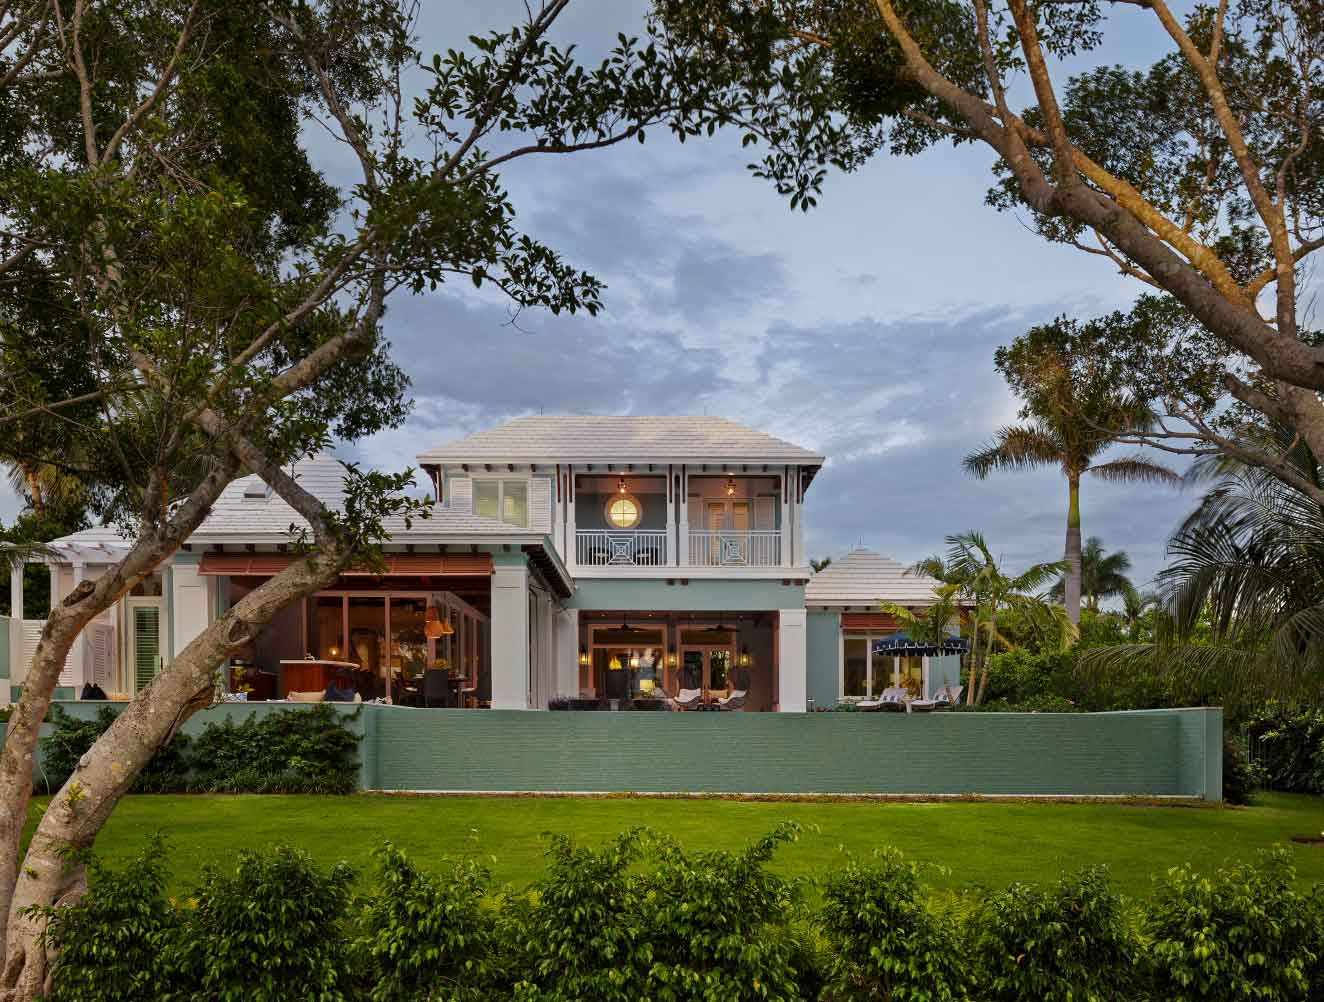 Exterior Architecture at West Indies Residence in Naples Florida, single family home designed by Kukk Architecture & Design Naples Architecture Firm